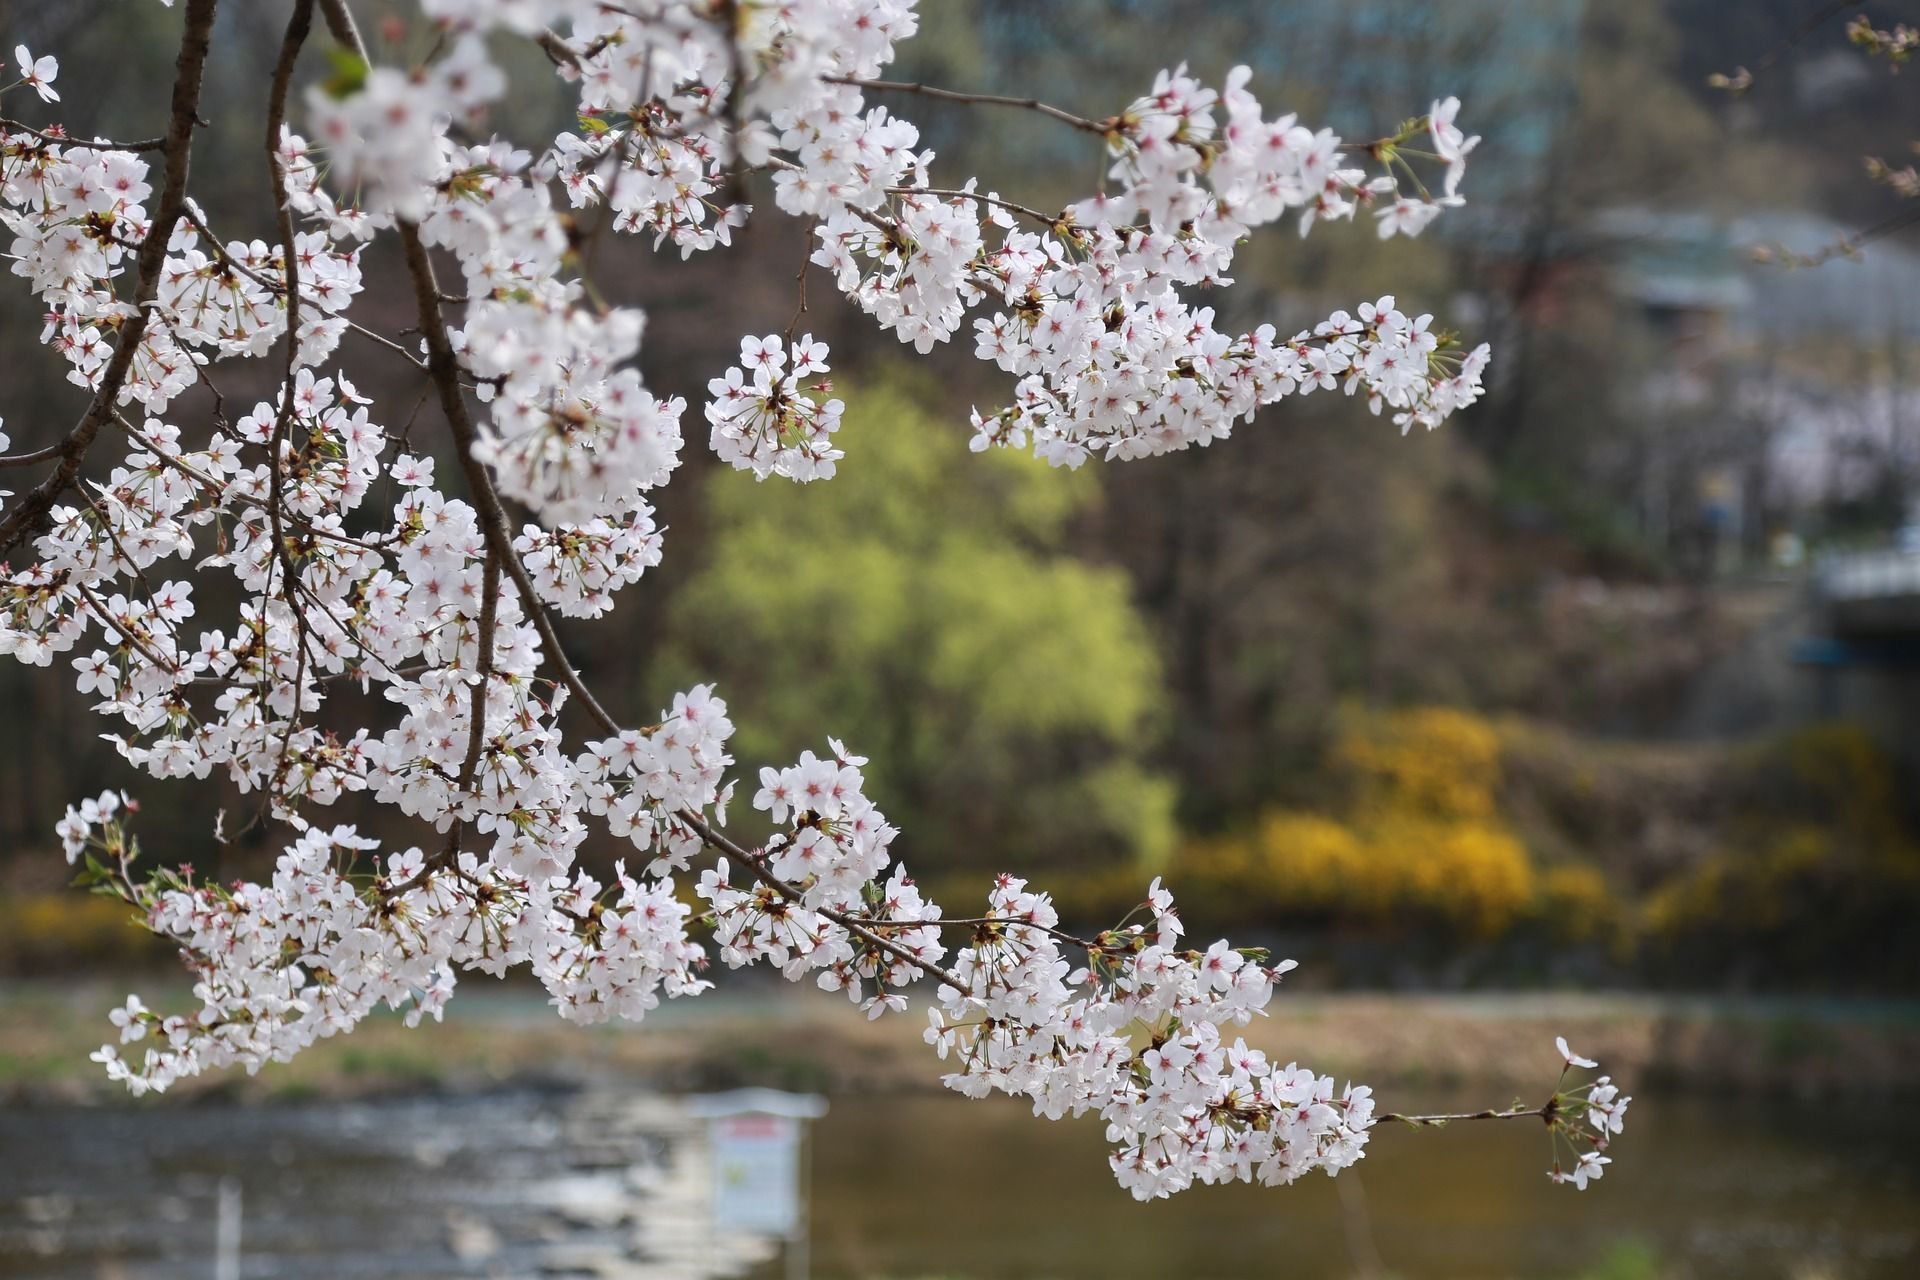 Top 10 Viewing Spots For Cherry Blossom In China China Com Cherry Blossom Blossom Nature